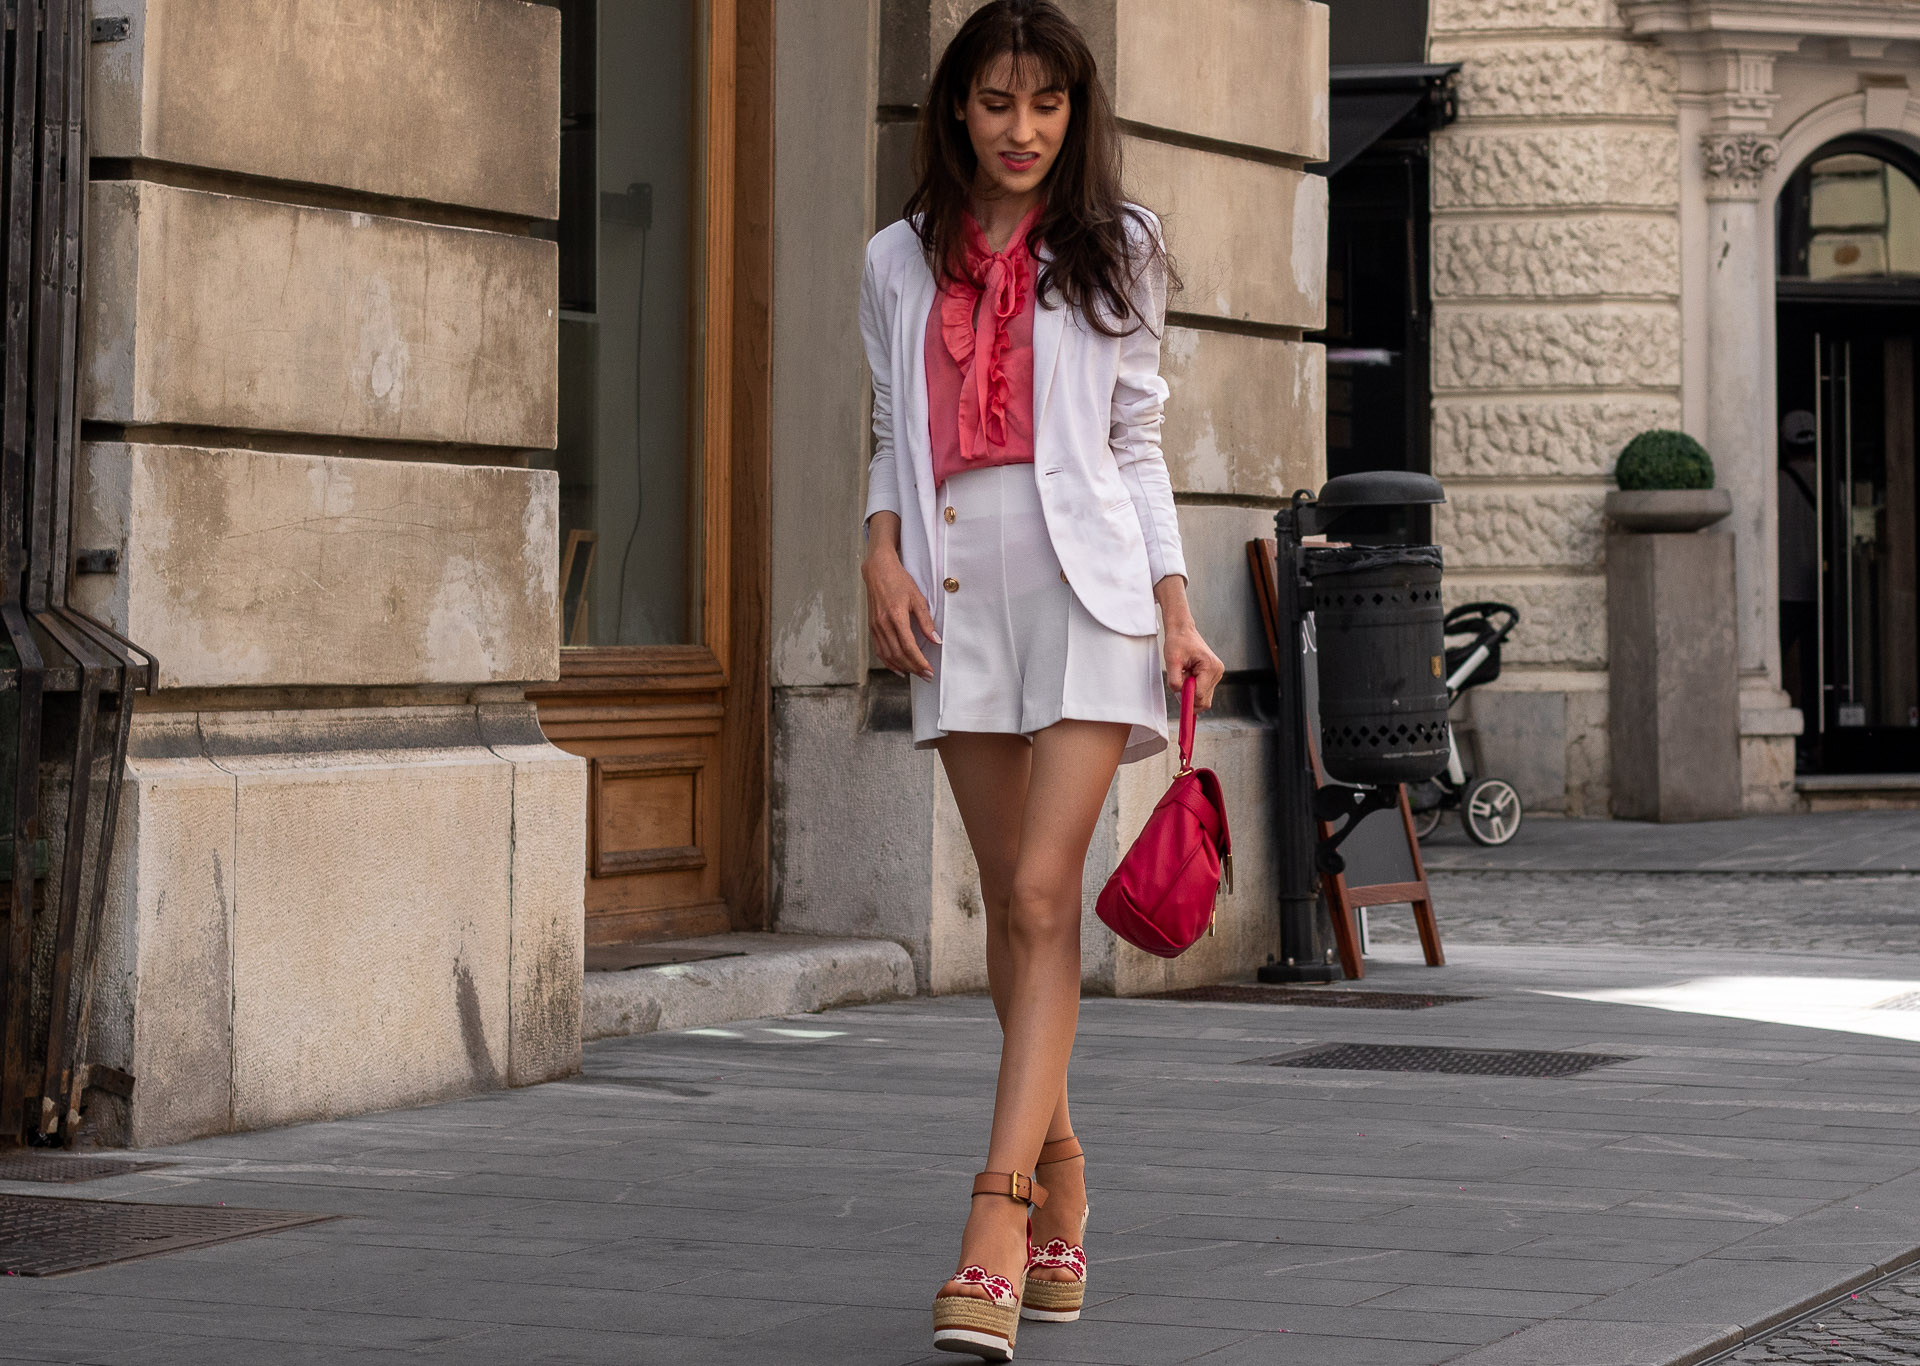 Fashion Blogger Veronika Lipar of Brunette from Wall Street wearing See by Chloé wedge espadrilles white shorts white blazer orange floppy tie blouse pink top handle bag in the city